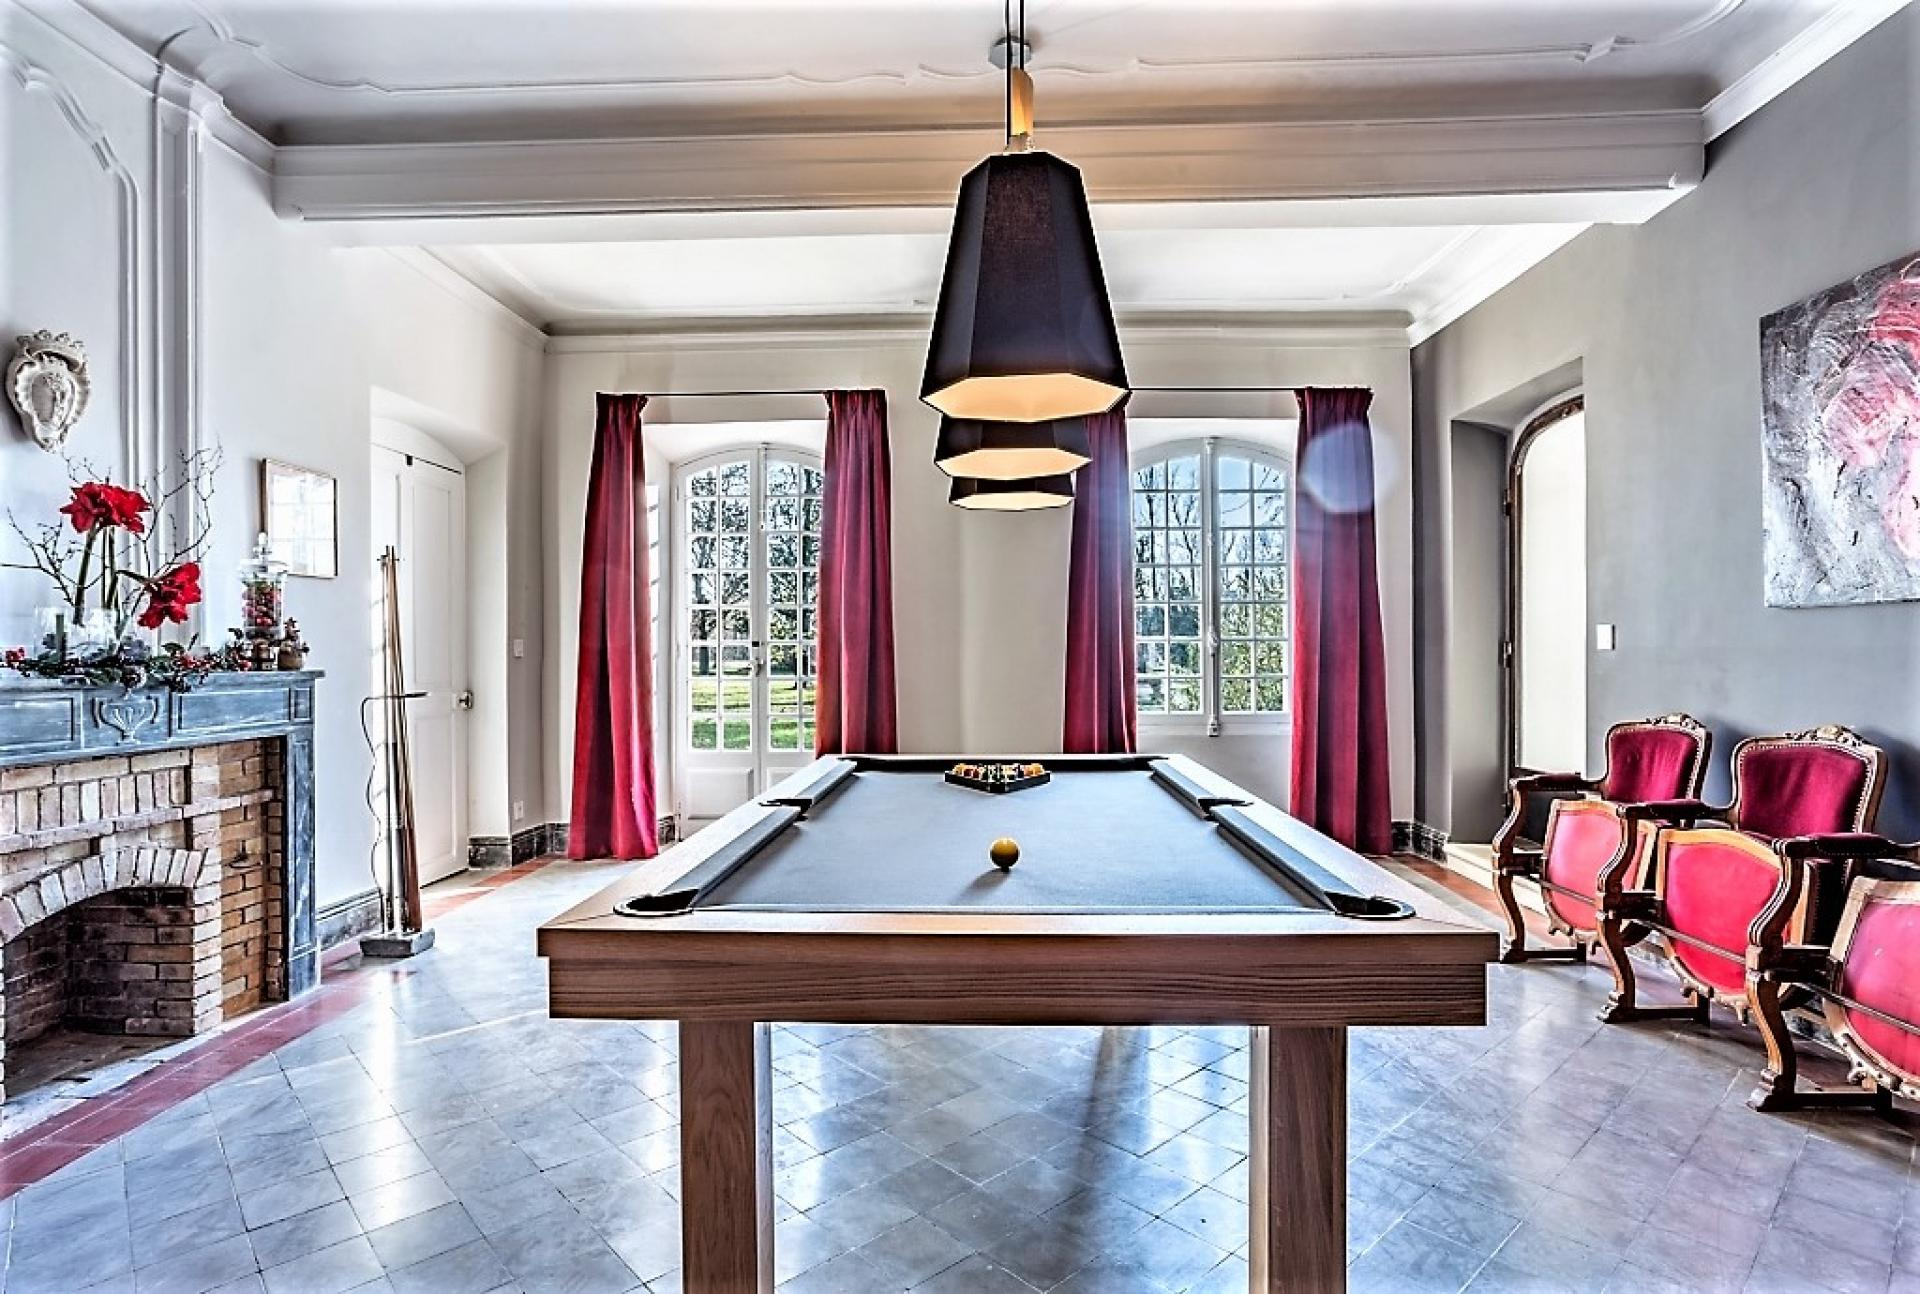 A GREAT ROOM TO PLAY A GAME OF POOL